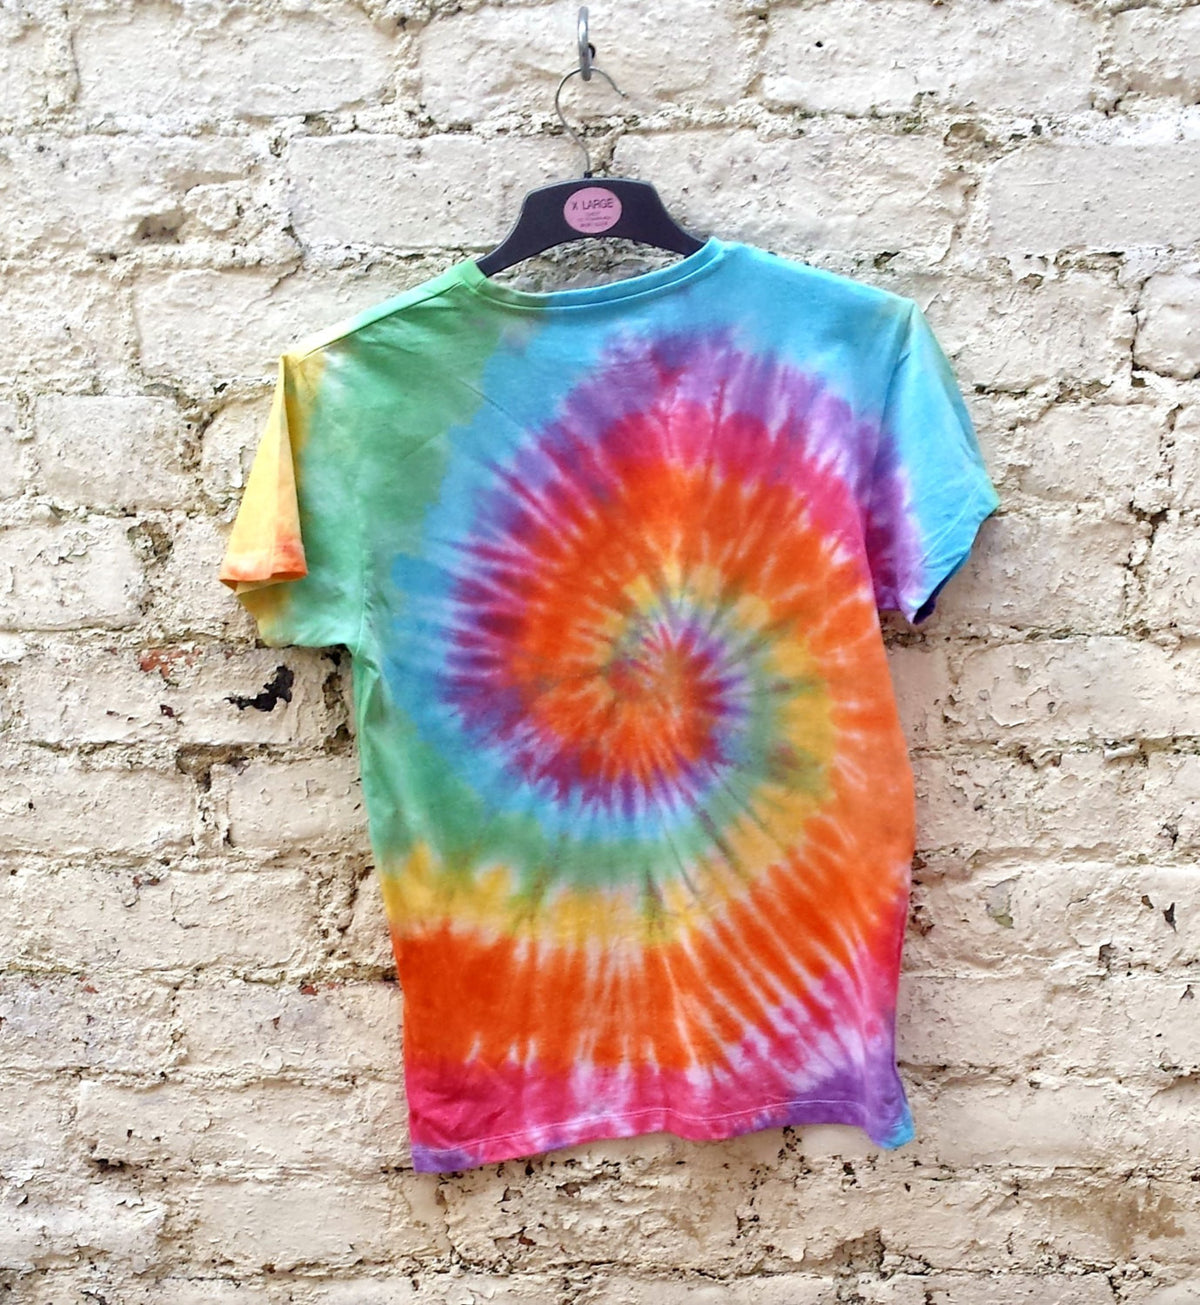 Rainbow Tie Dye Shirt Hippie Tshirt Unisex T-shirt ALL SIZES Festival Clothing Trippy Psychedelic Mens Gift LGBT trippy shirt gift